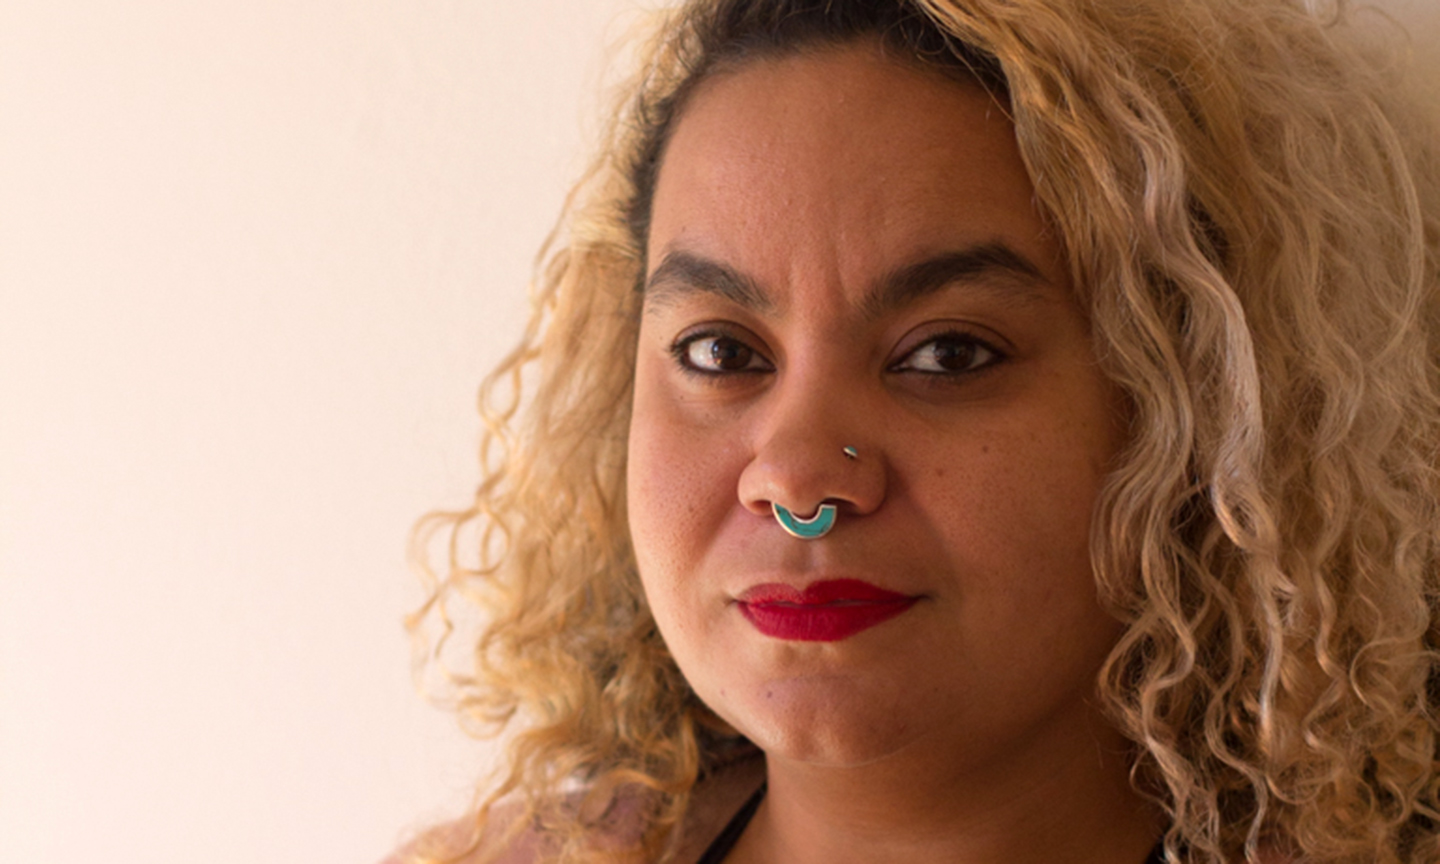 a photo of adrienne maree brown, a lightskinned Black person with a bull nose ring and shoulder-length blond, curly hair